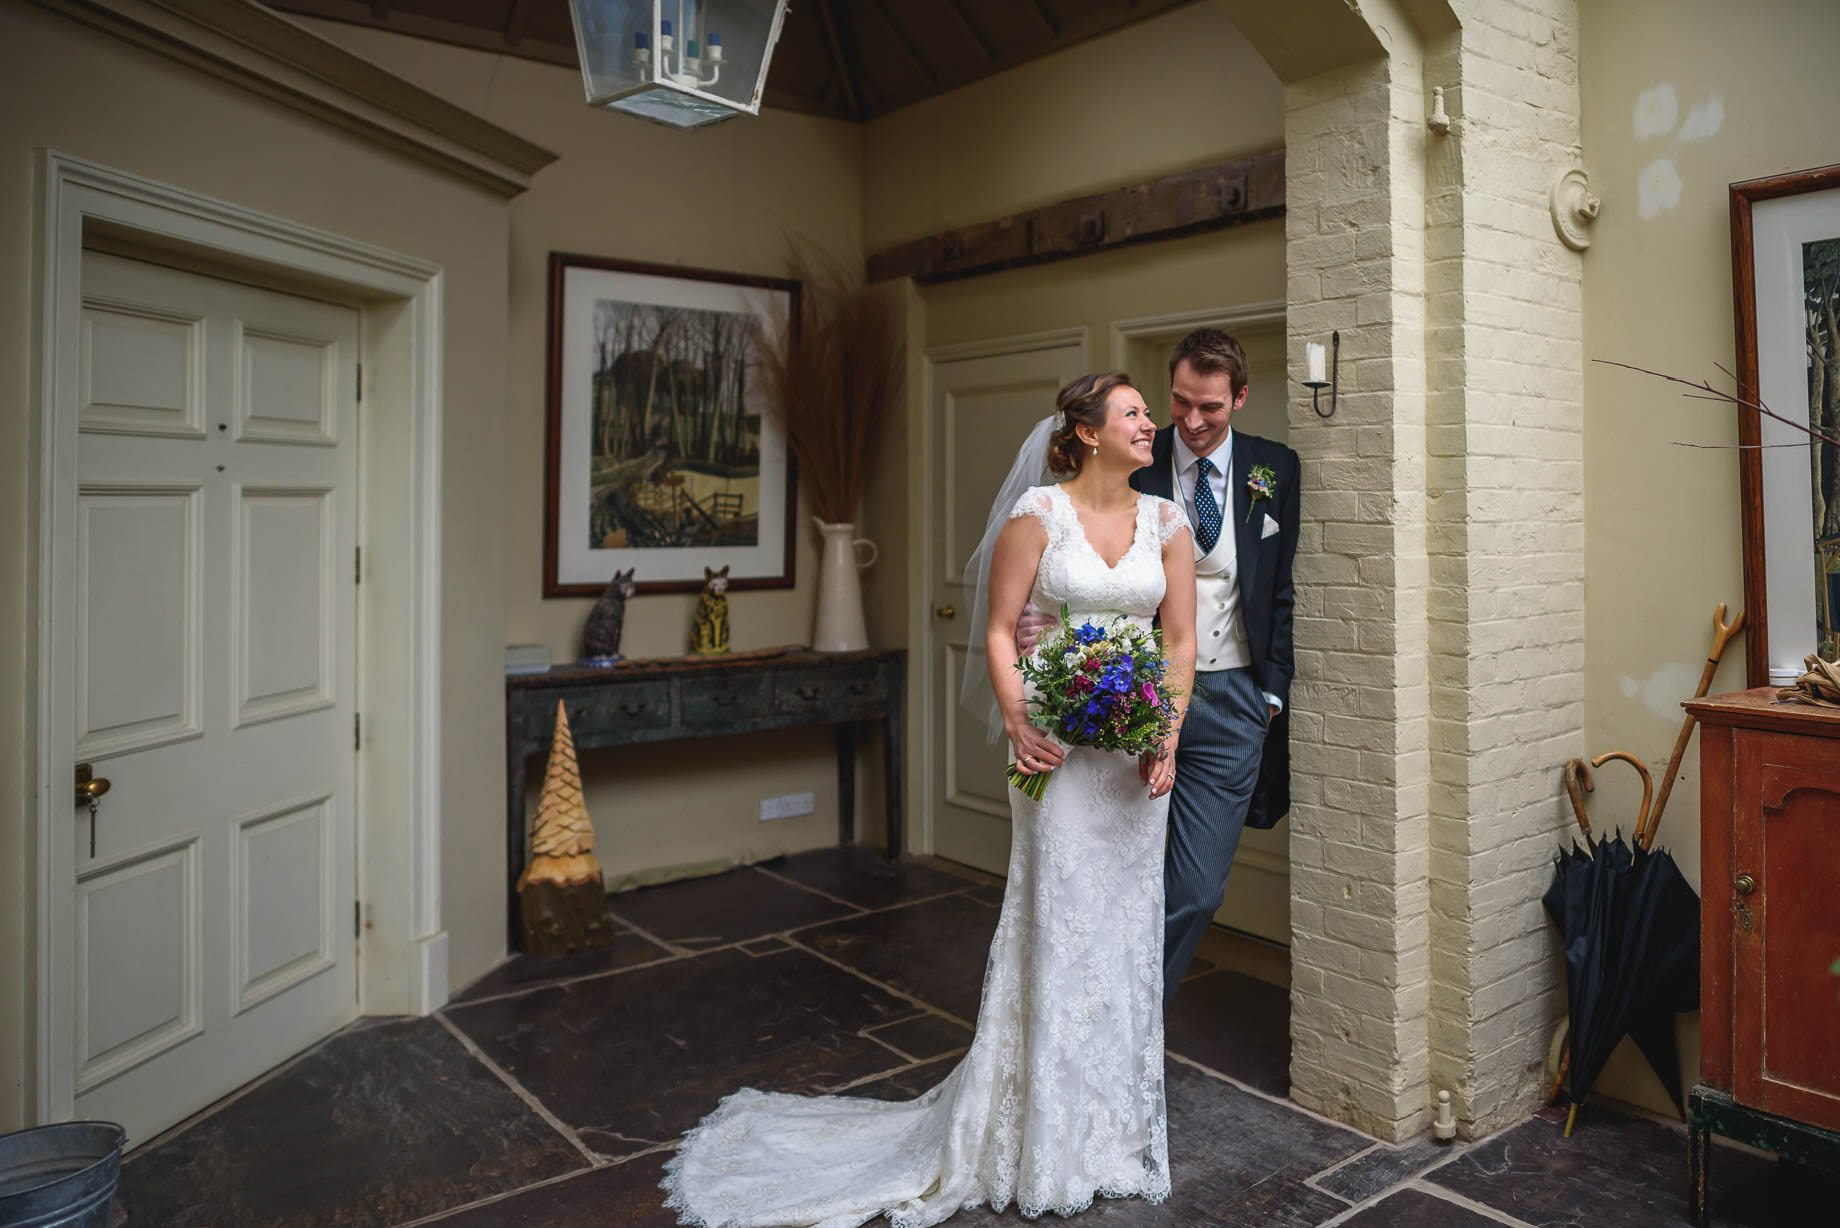 Bury Court Barn wedding photography - Ashley and Henry by Guy Collier Photography (75 of 188)